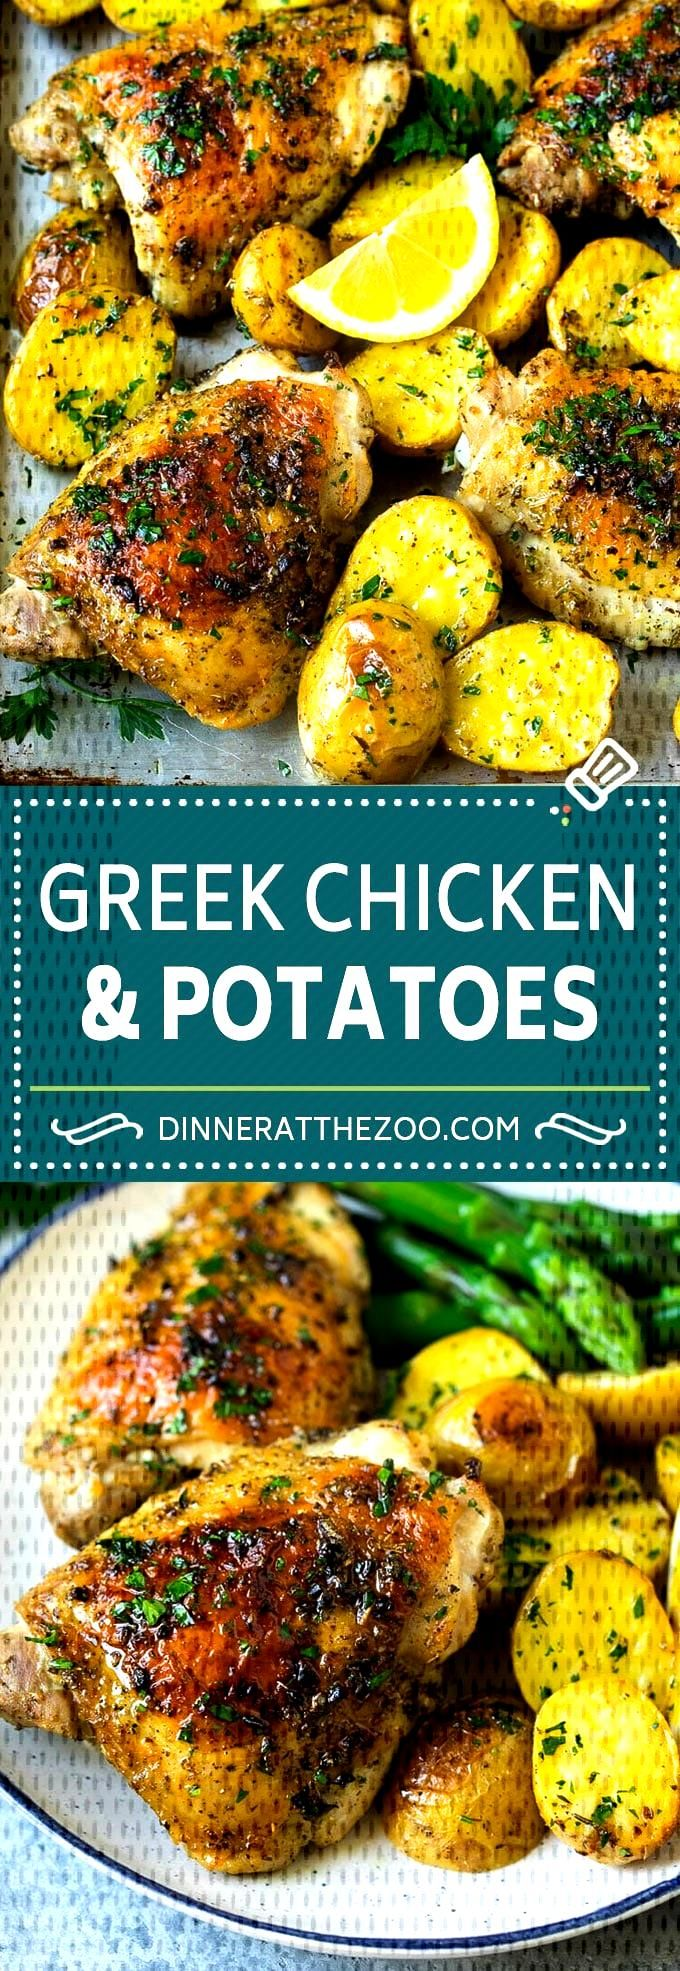 Greek Chicken and Potatoes